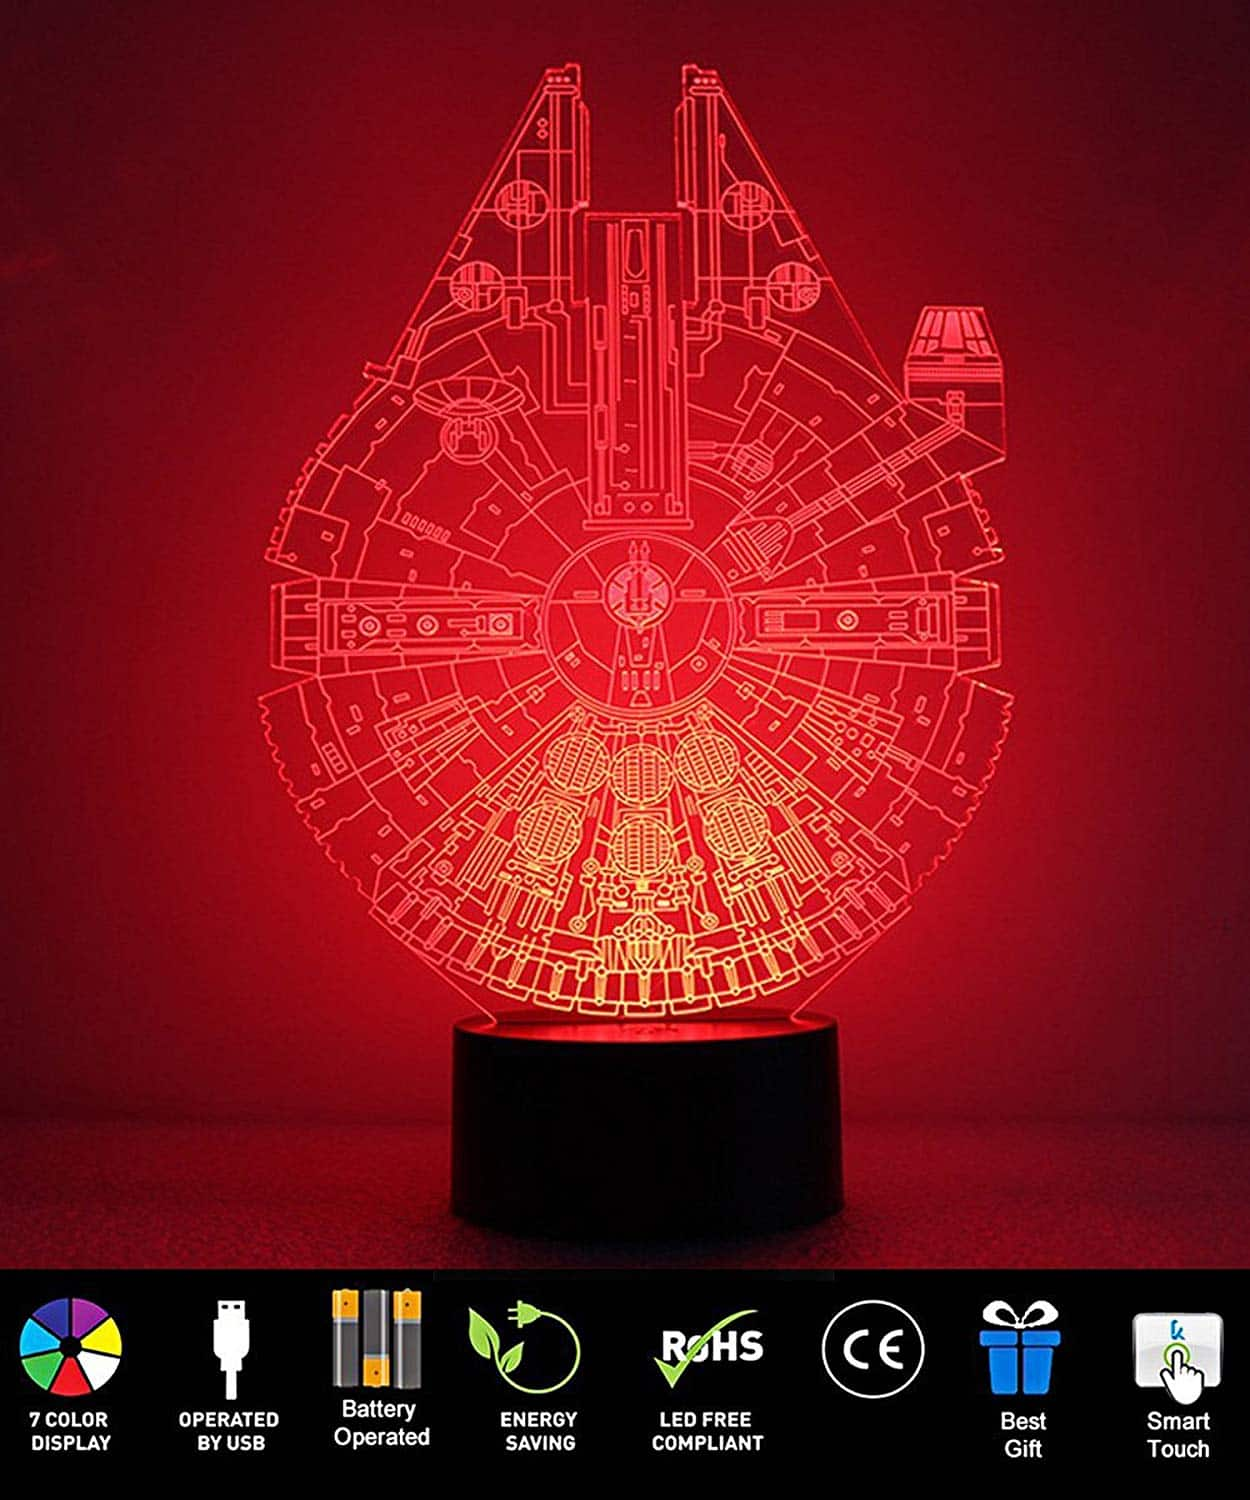 50%OFF Millennium Falcon Night Light 3D Illusion 7 Color Multicolored Changing w USB Powered Table Desk Lamp for Children Bedroom, Home Decor $6.49